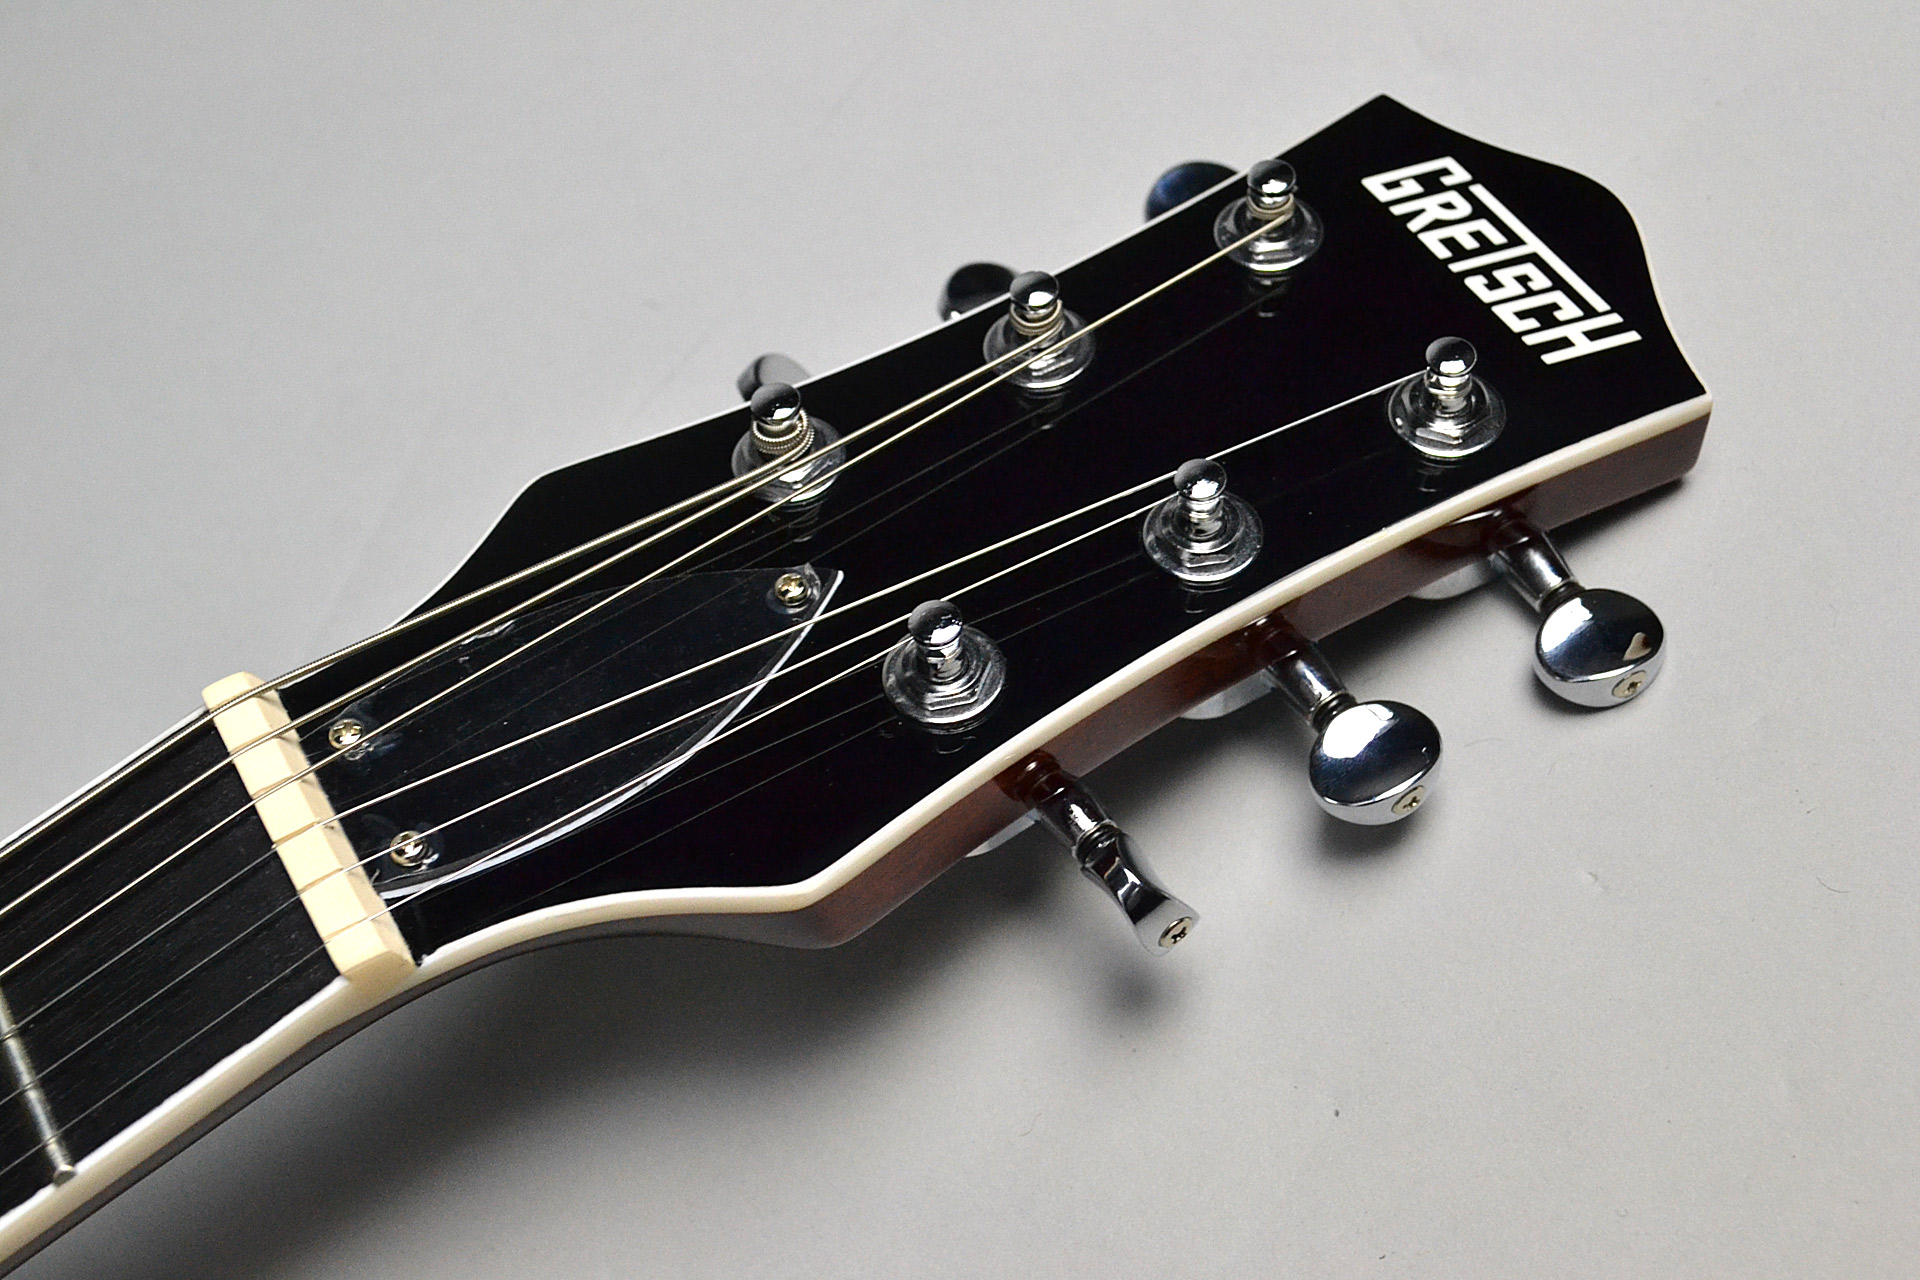 G5220 Electromatic Jet™ BT Single-Cut with V-Stoptail Blackのヘッド画像